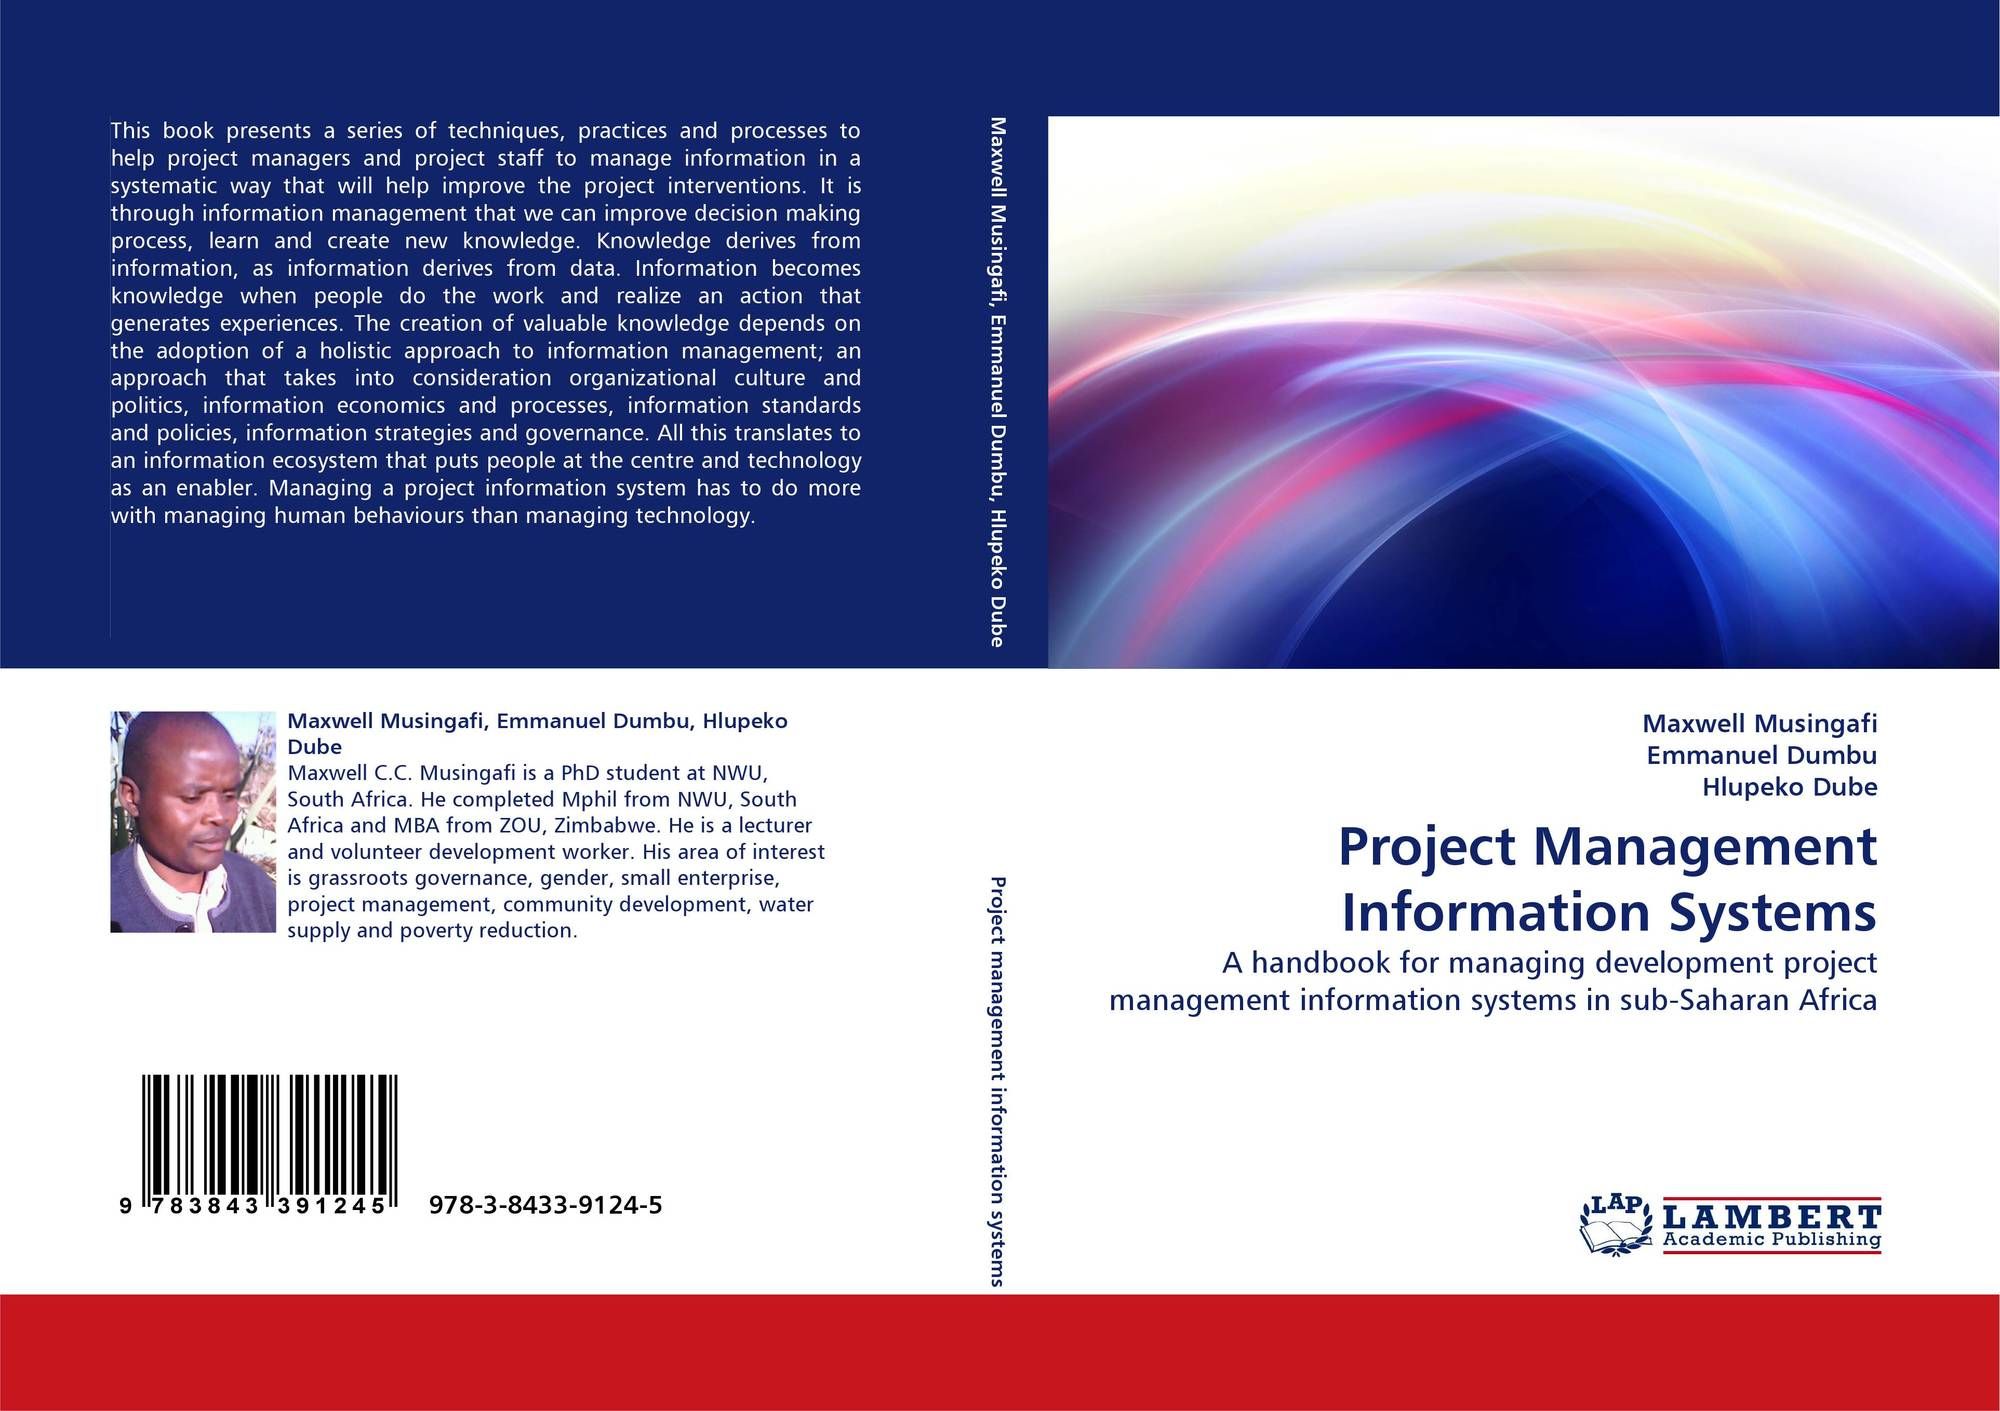 project management information systems Project management for information systems 4th edition for those studying project management for information systems, this book has no equal roger atkinson, bournemouth universitybased on.